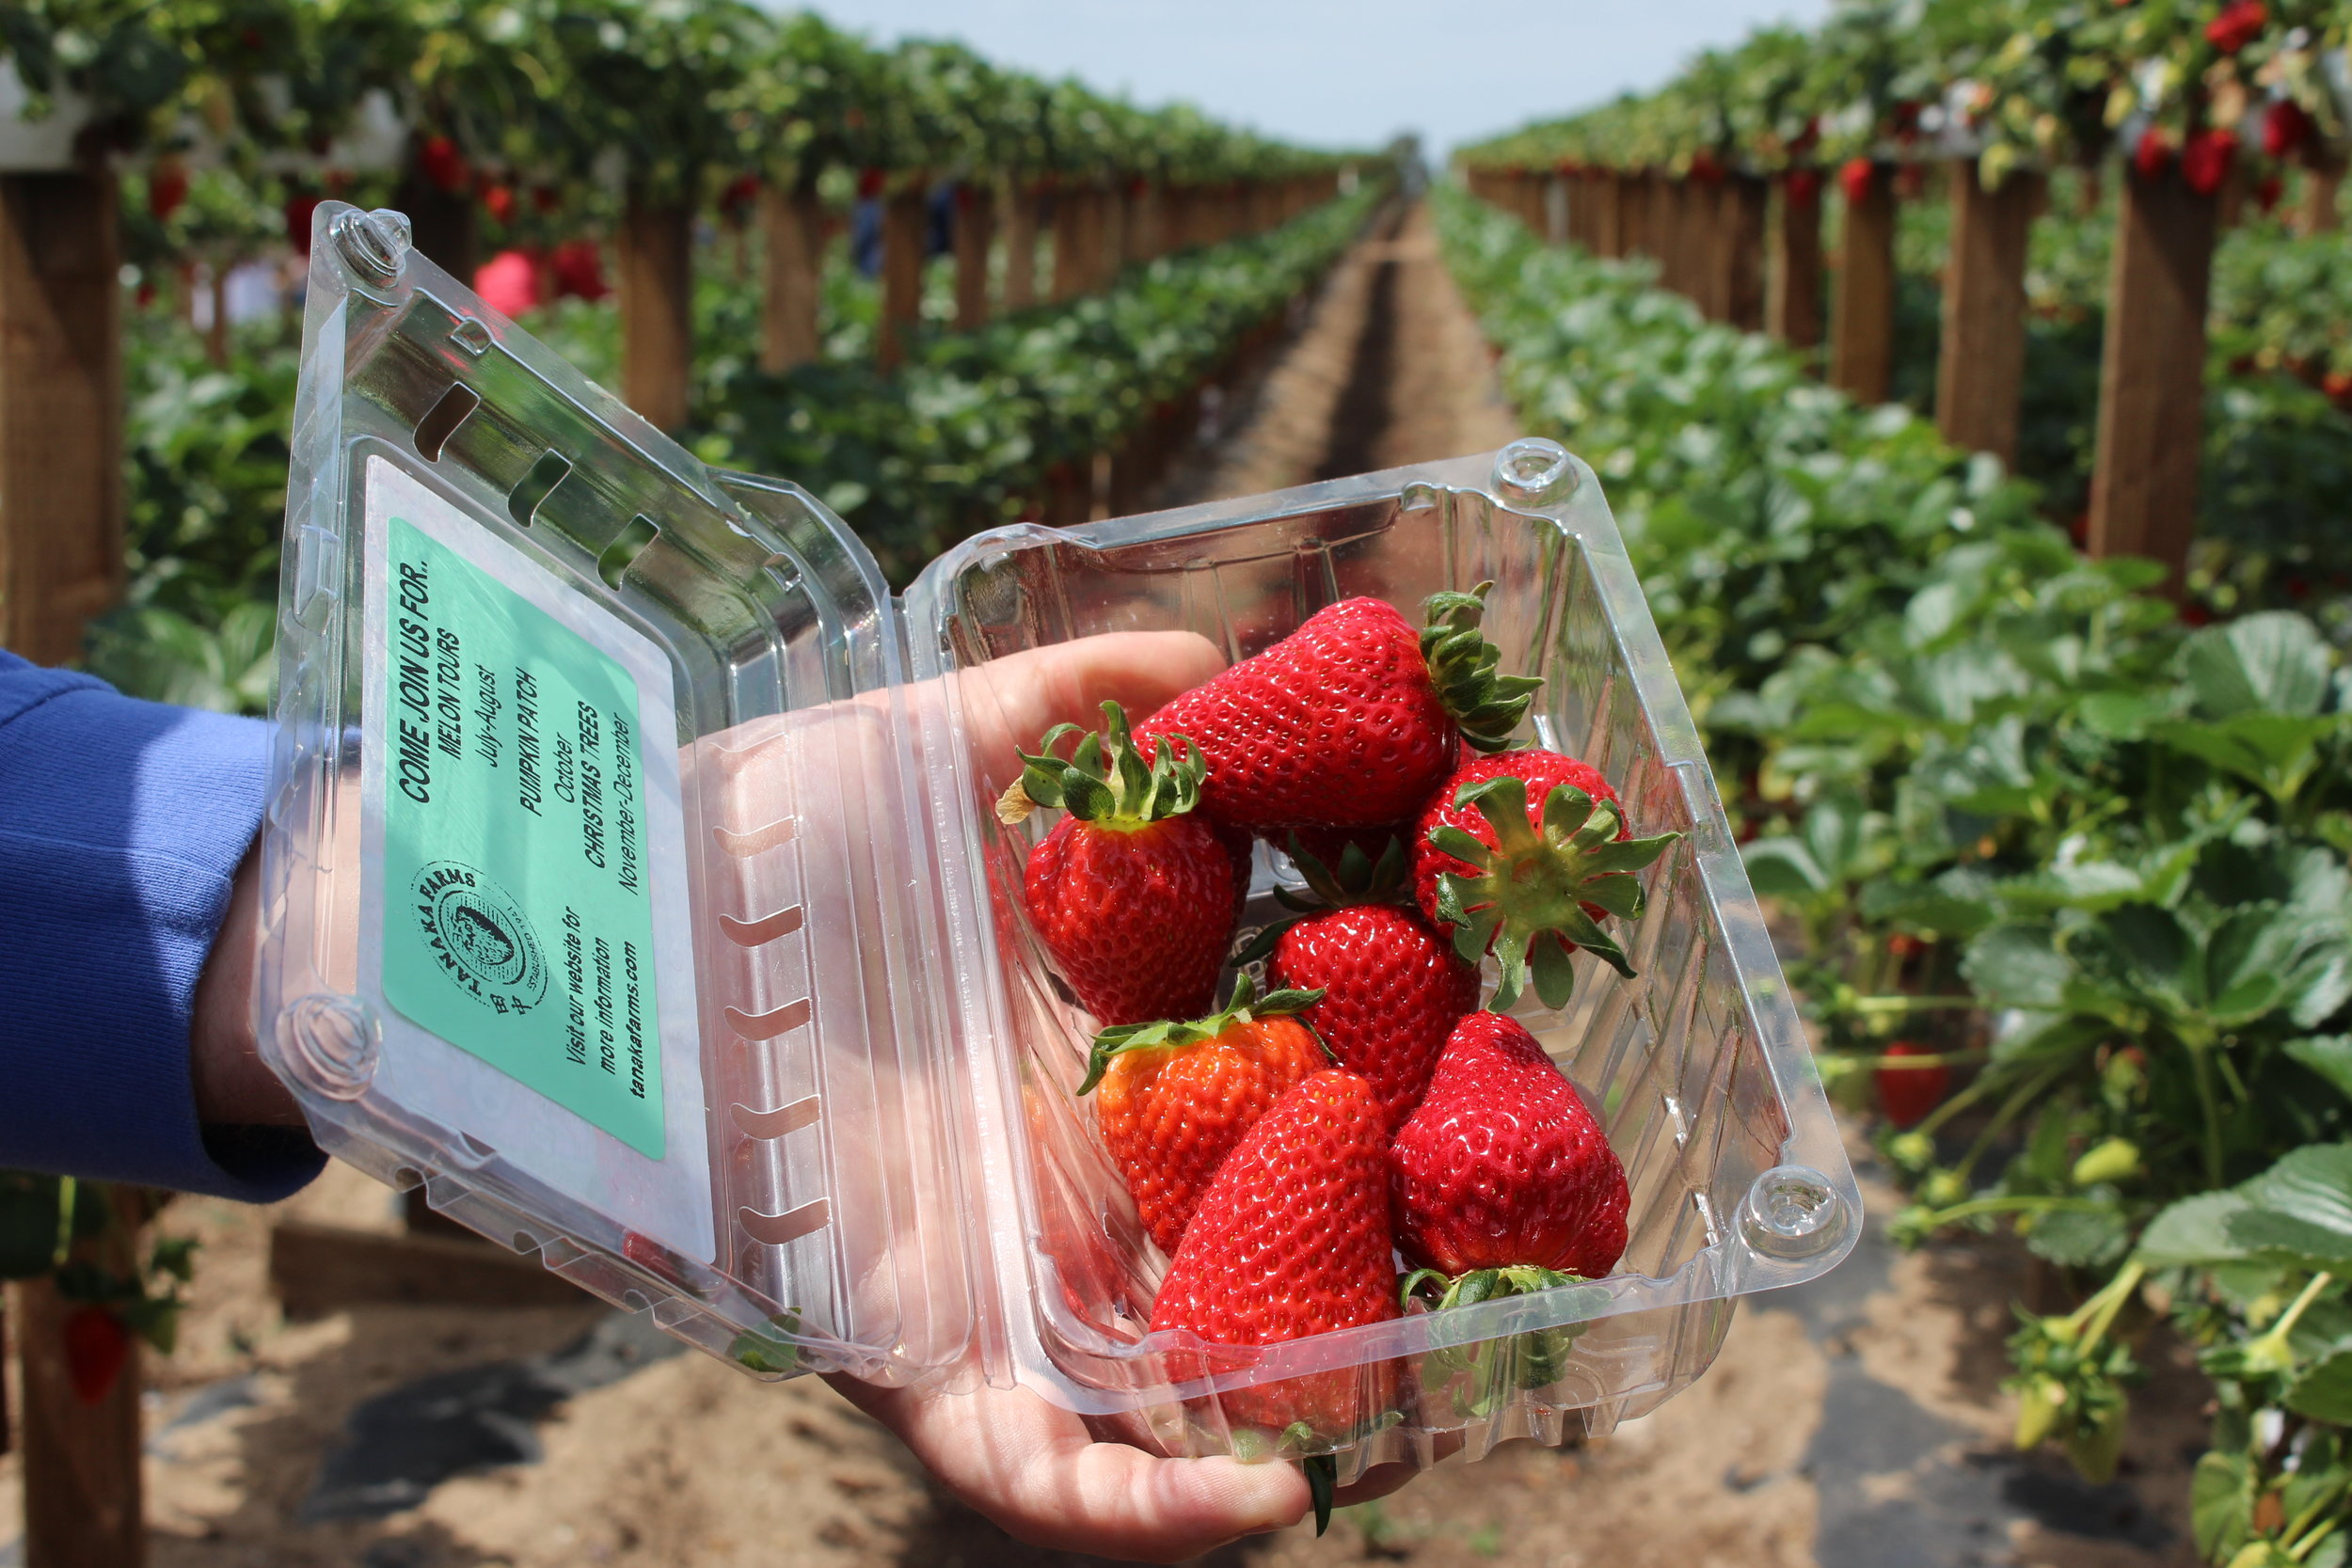 Tanaka Farms allows visitors to take home one pound of strawberries.